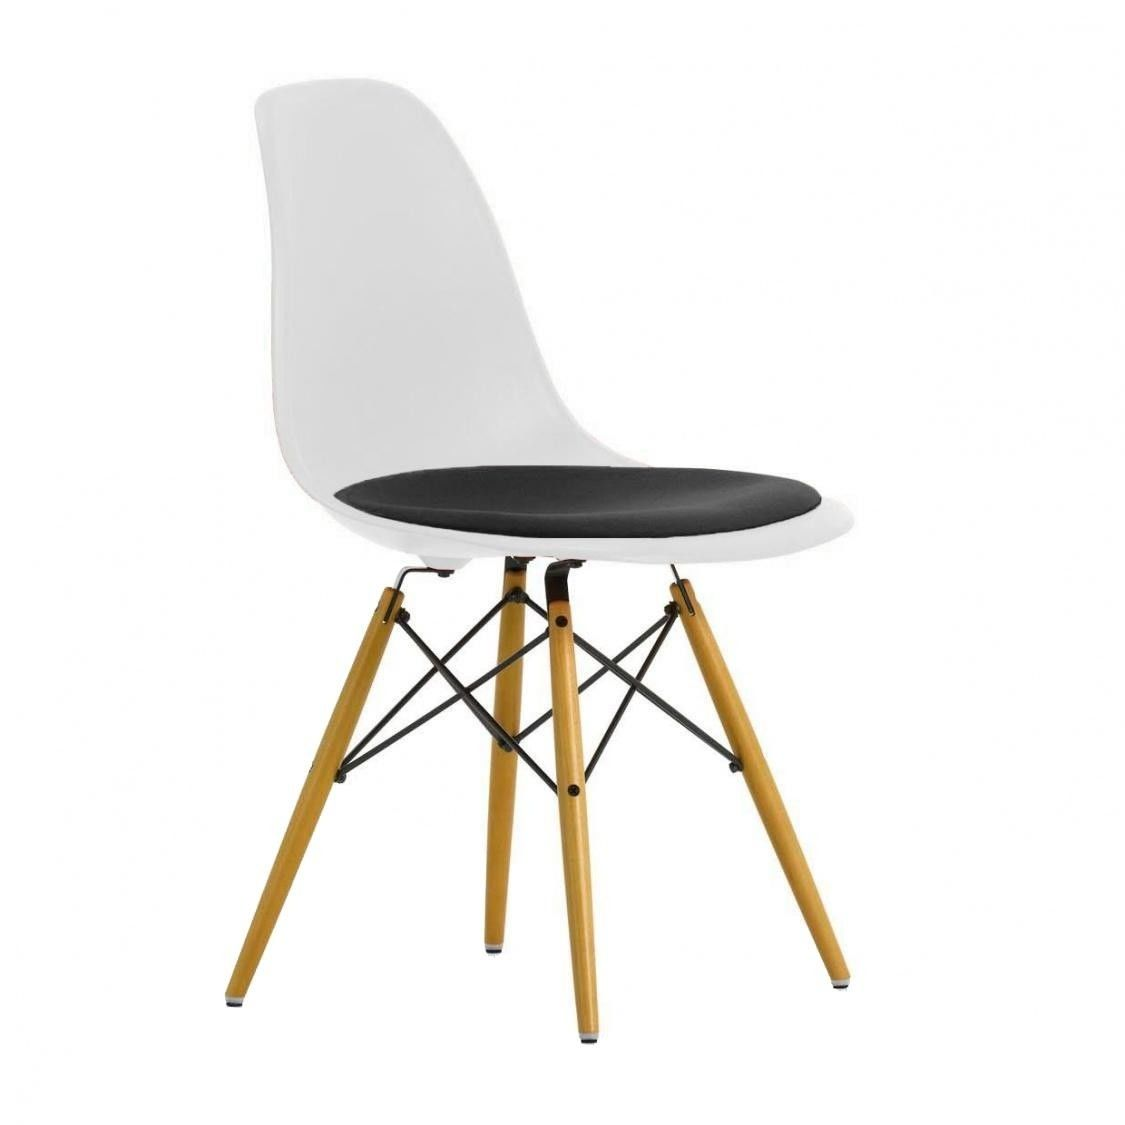 Eames plastic side chair dsw upholst h43cm vitra for Chaise dsw eames